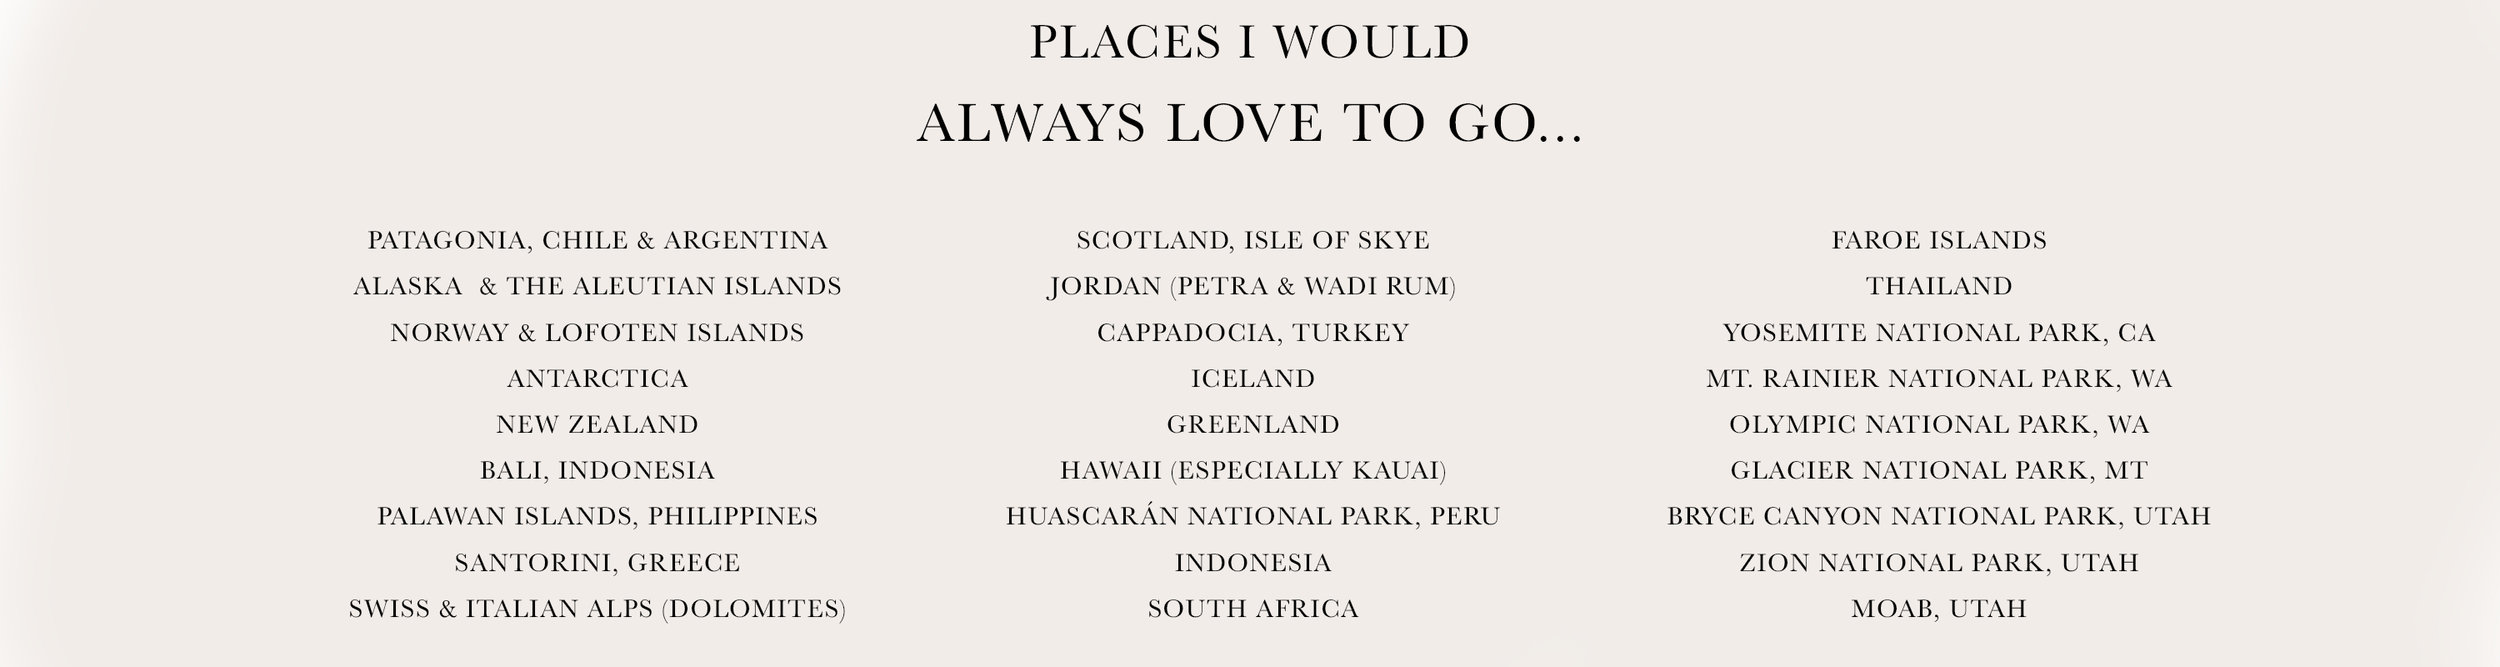 PLACES I WOULD LOVE TO GO.jpg